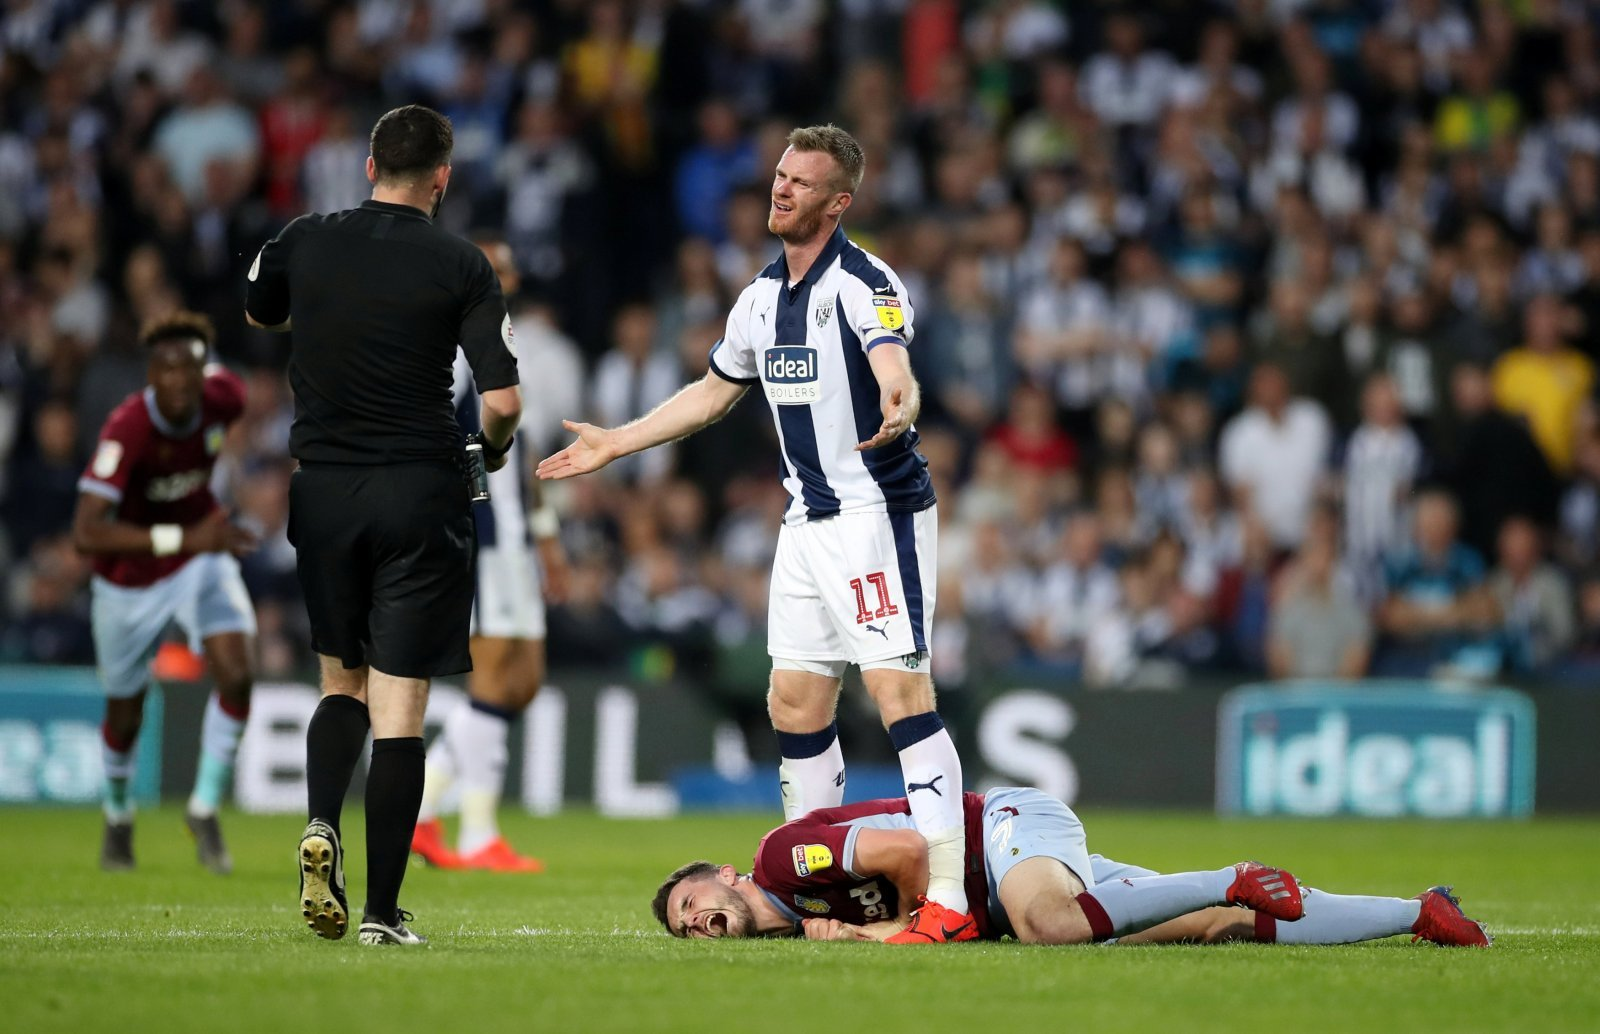 Chris Brunt cost his team dearly when they were relying on him the most